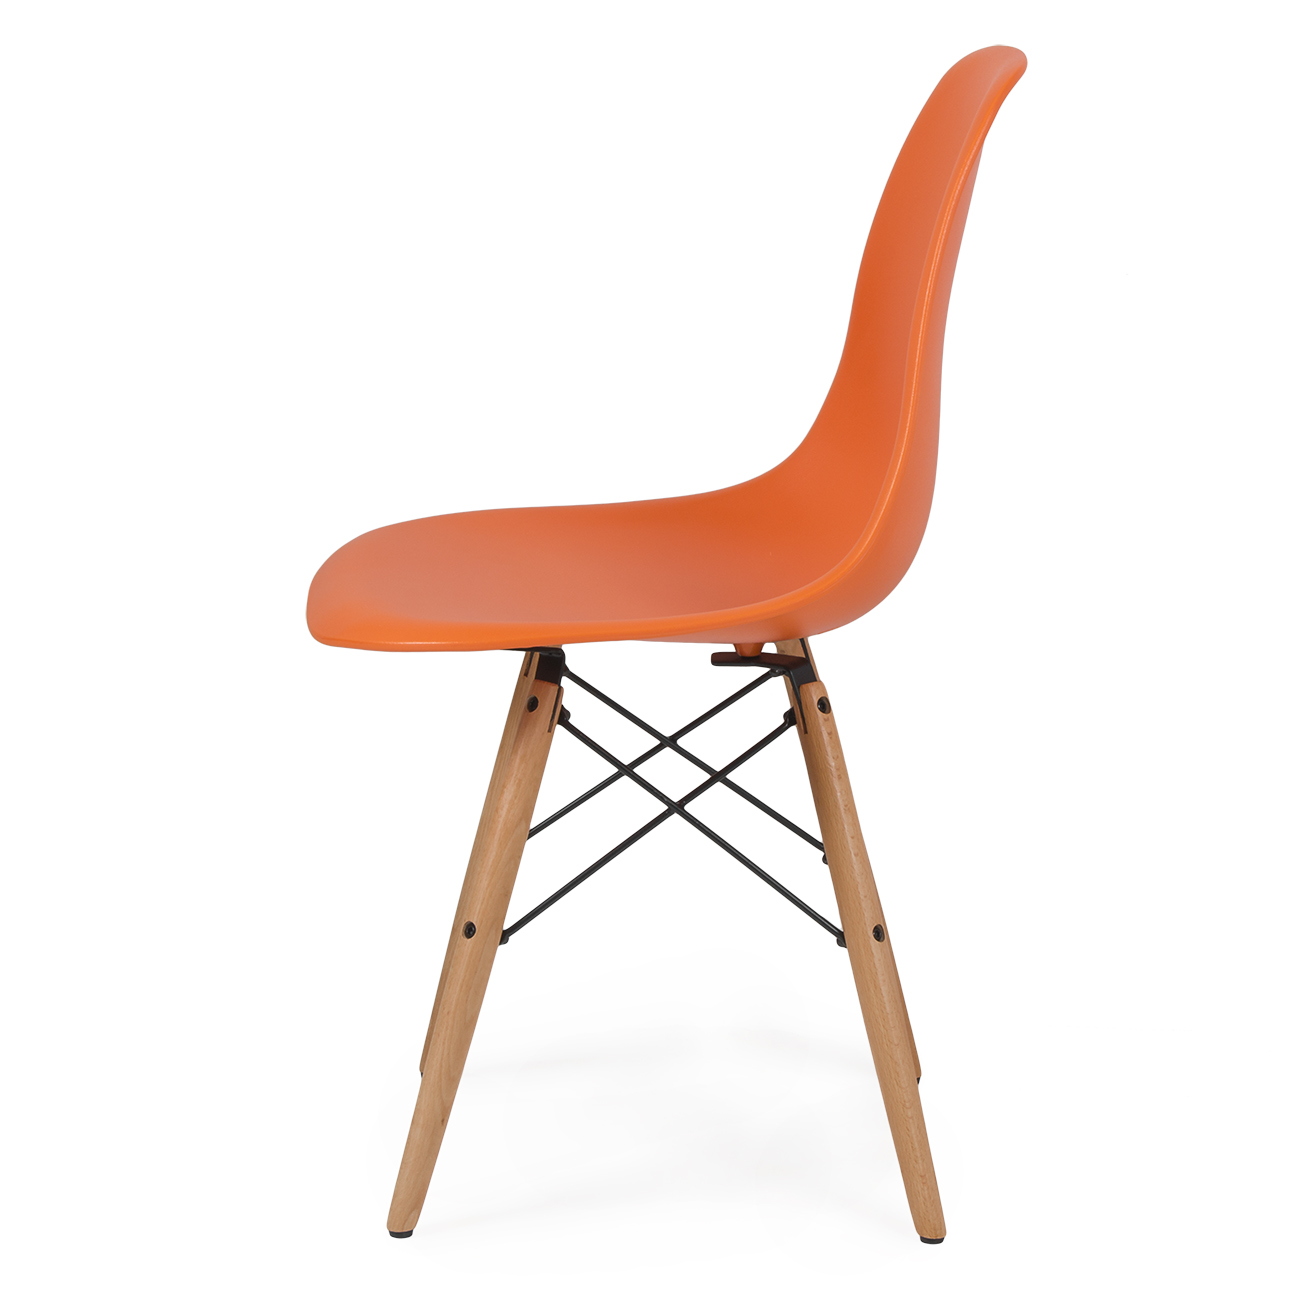 eiffel chair wood legs ergonomic executive set of 4 dsw dowel eames molded abs natural wooden